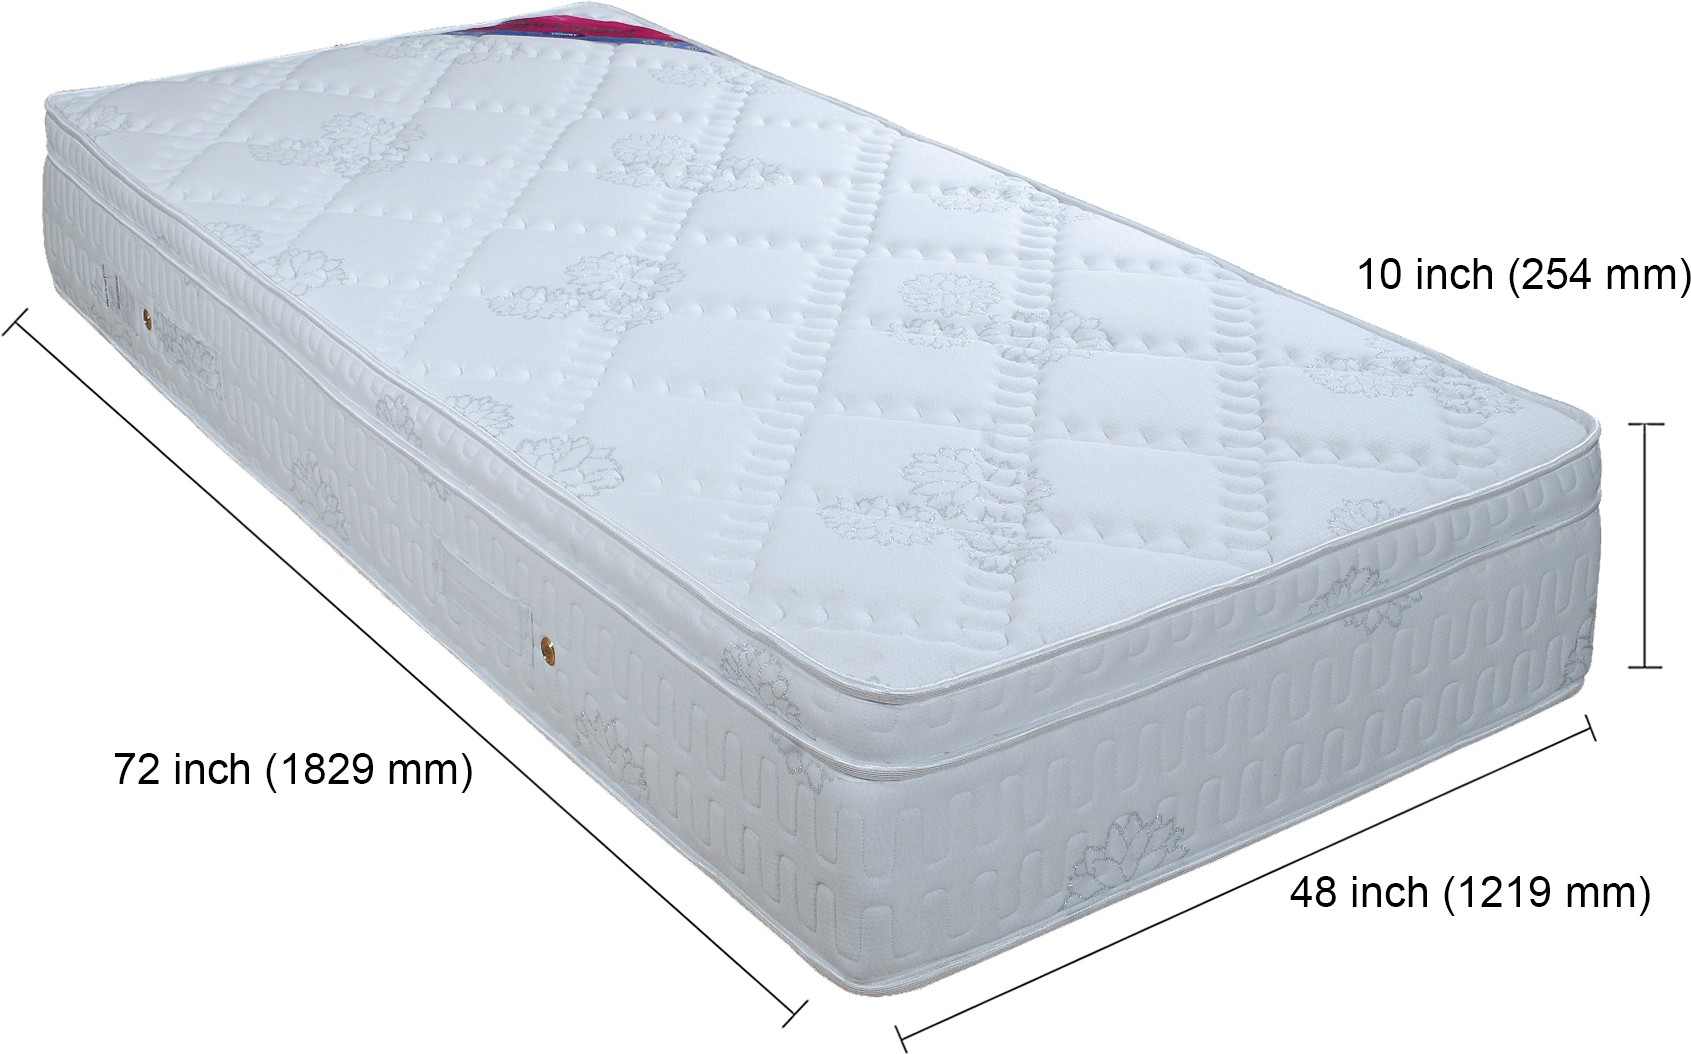 Springwel Luxury Collection 10 inch Single Spring Mattress